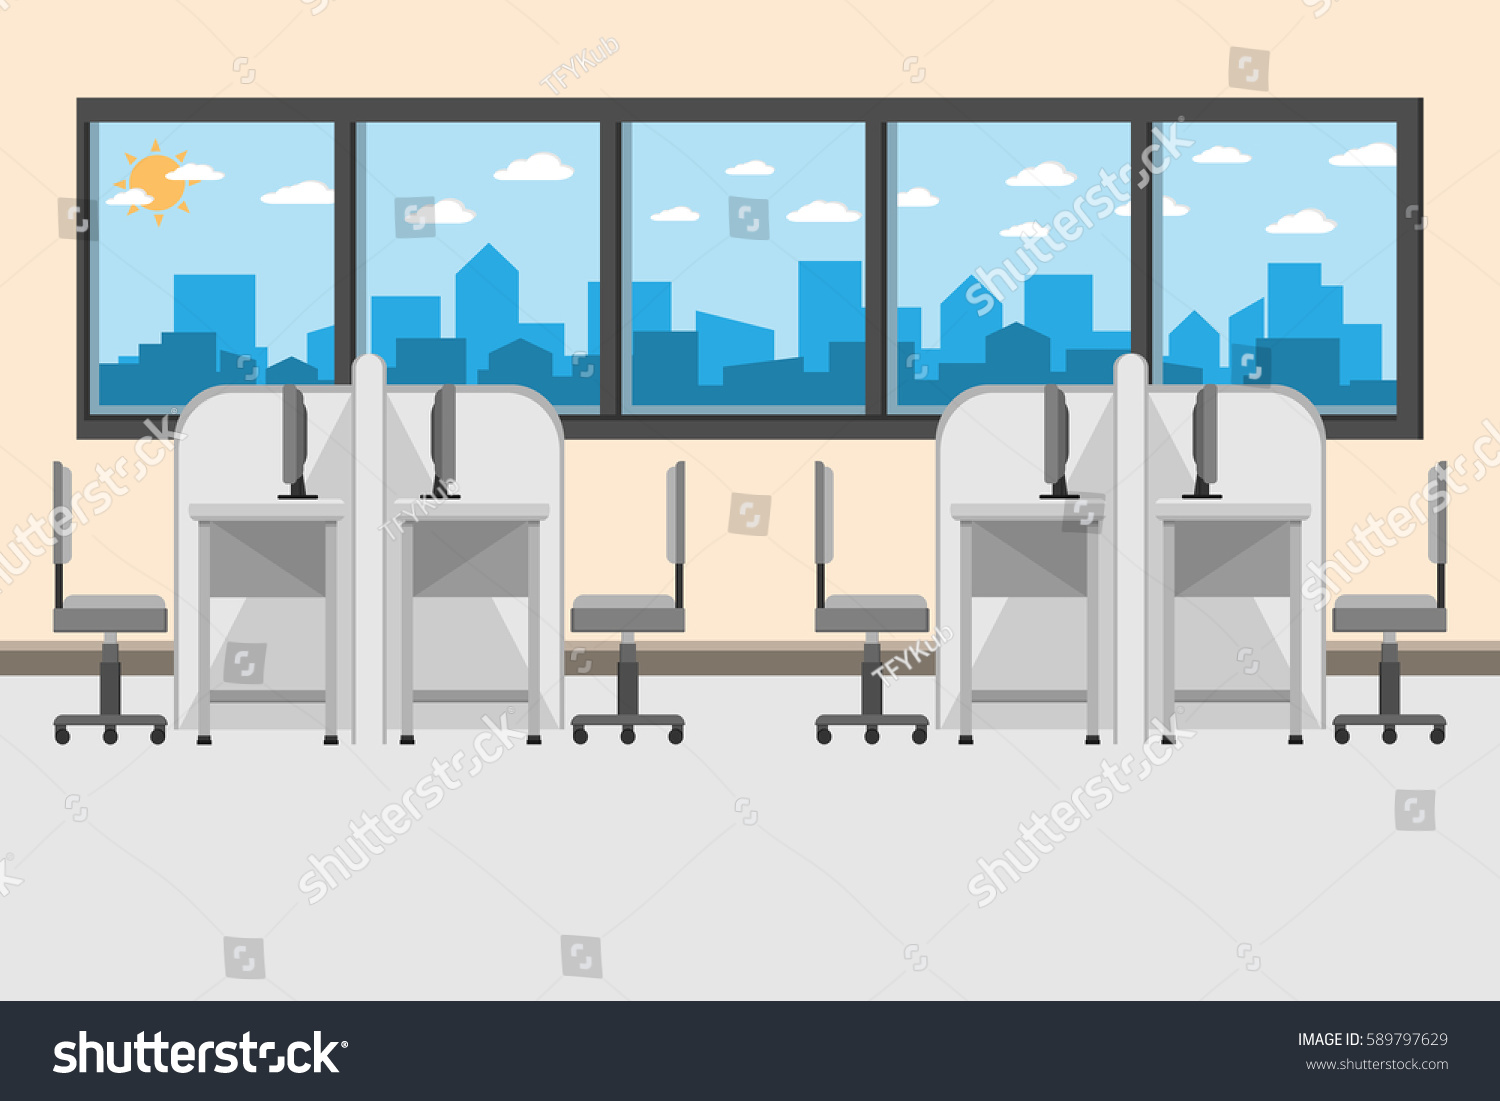 Interior office room design computer on stock vector Computer office interior design